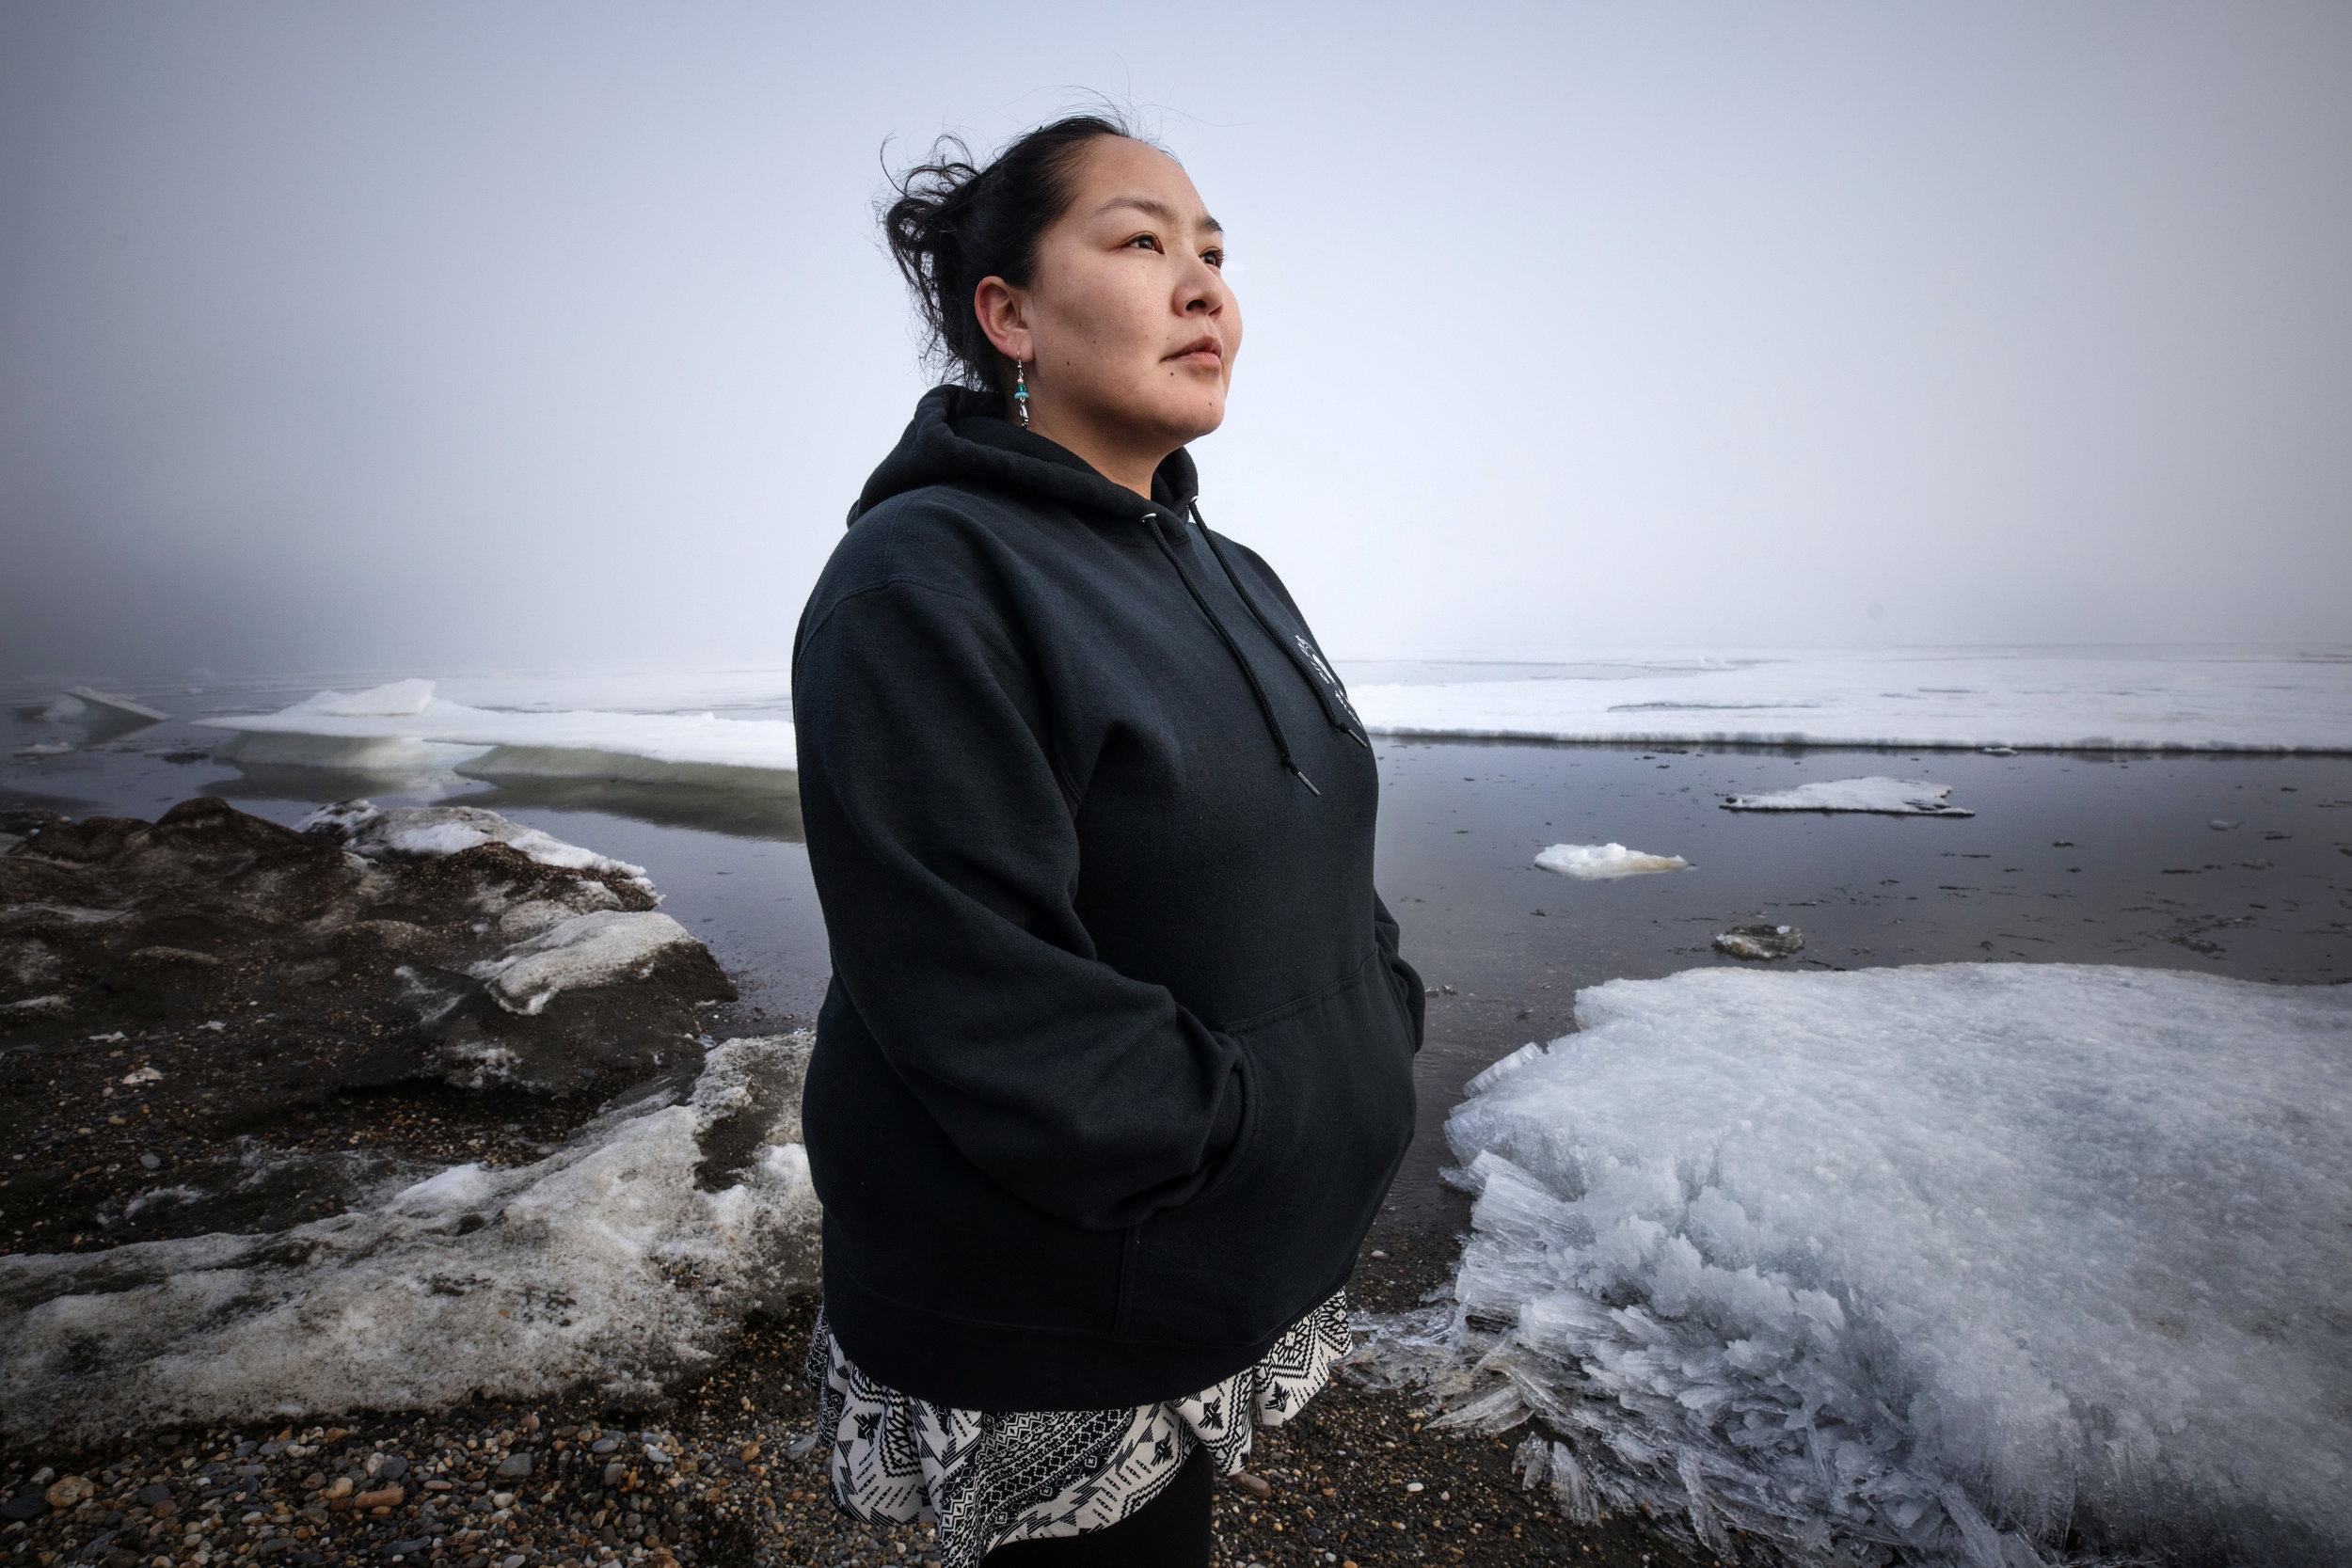 Meghann Piscoya, grew up in Shishmaref, Alaska, a traditional Inupiaq village under imminent threat from climate change. Residents rely heavily on a subsistence lifestyle, hunting and gathering much of their food, but the community has voted to relocate as the shoreline rapidly erodes and the permafrost melts.